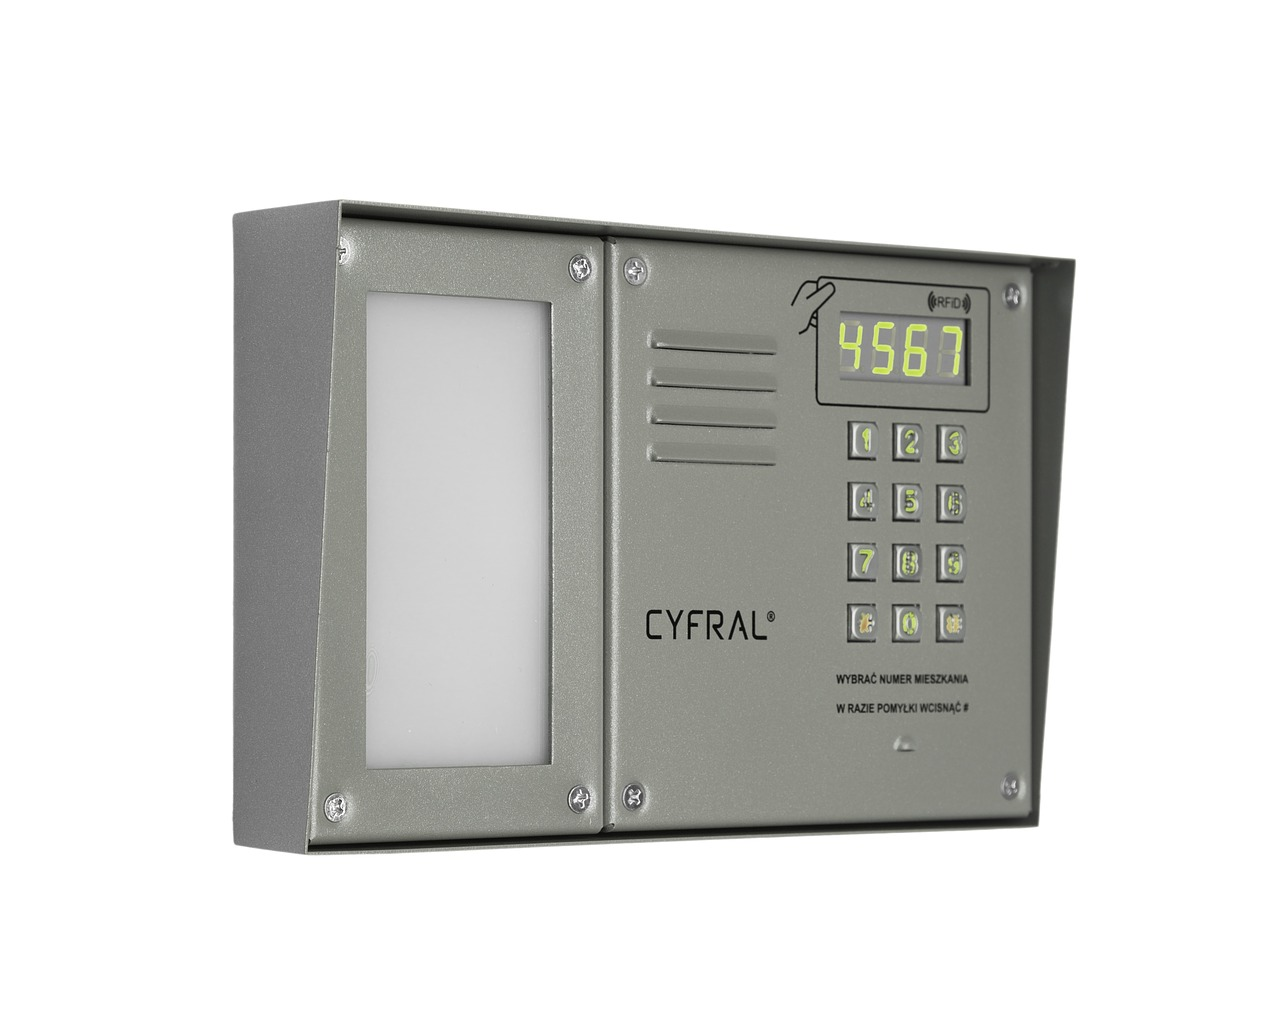 An example of intercom systems